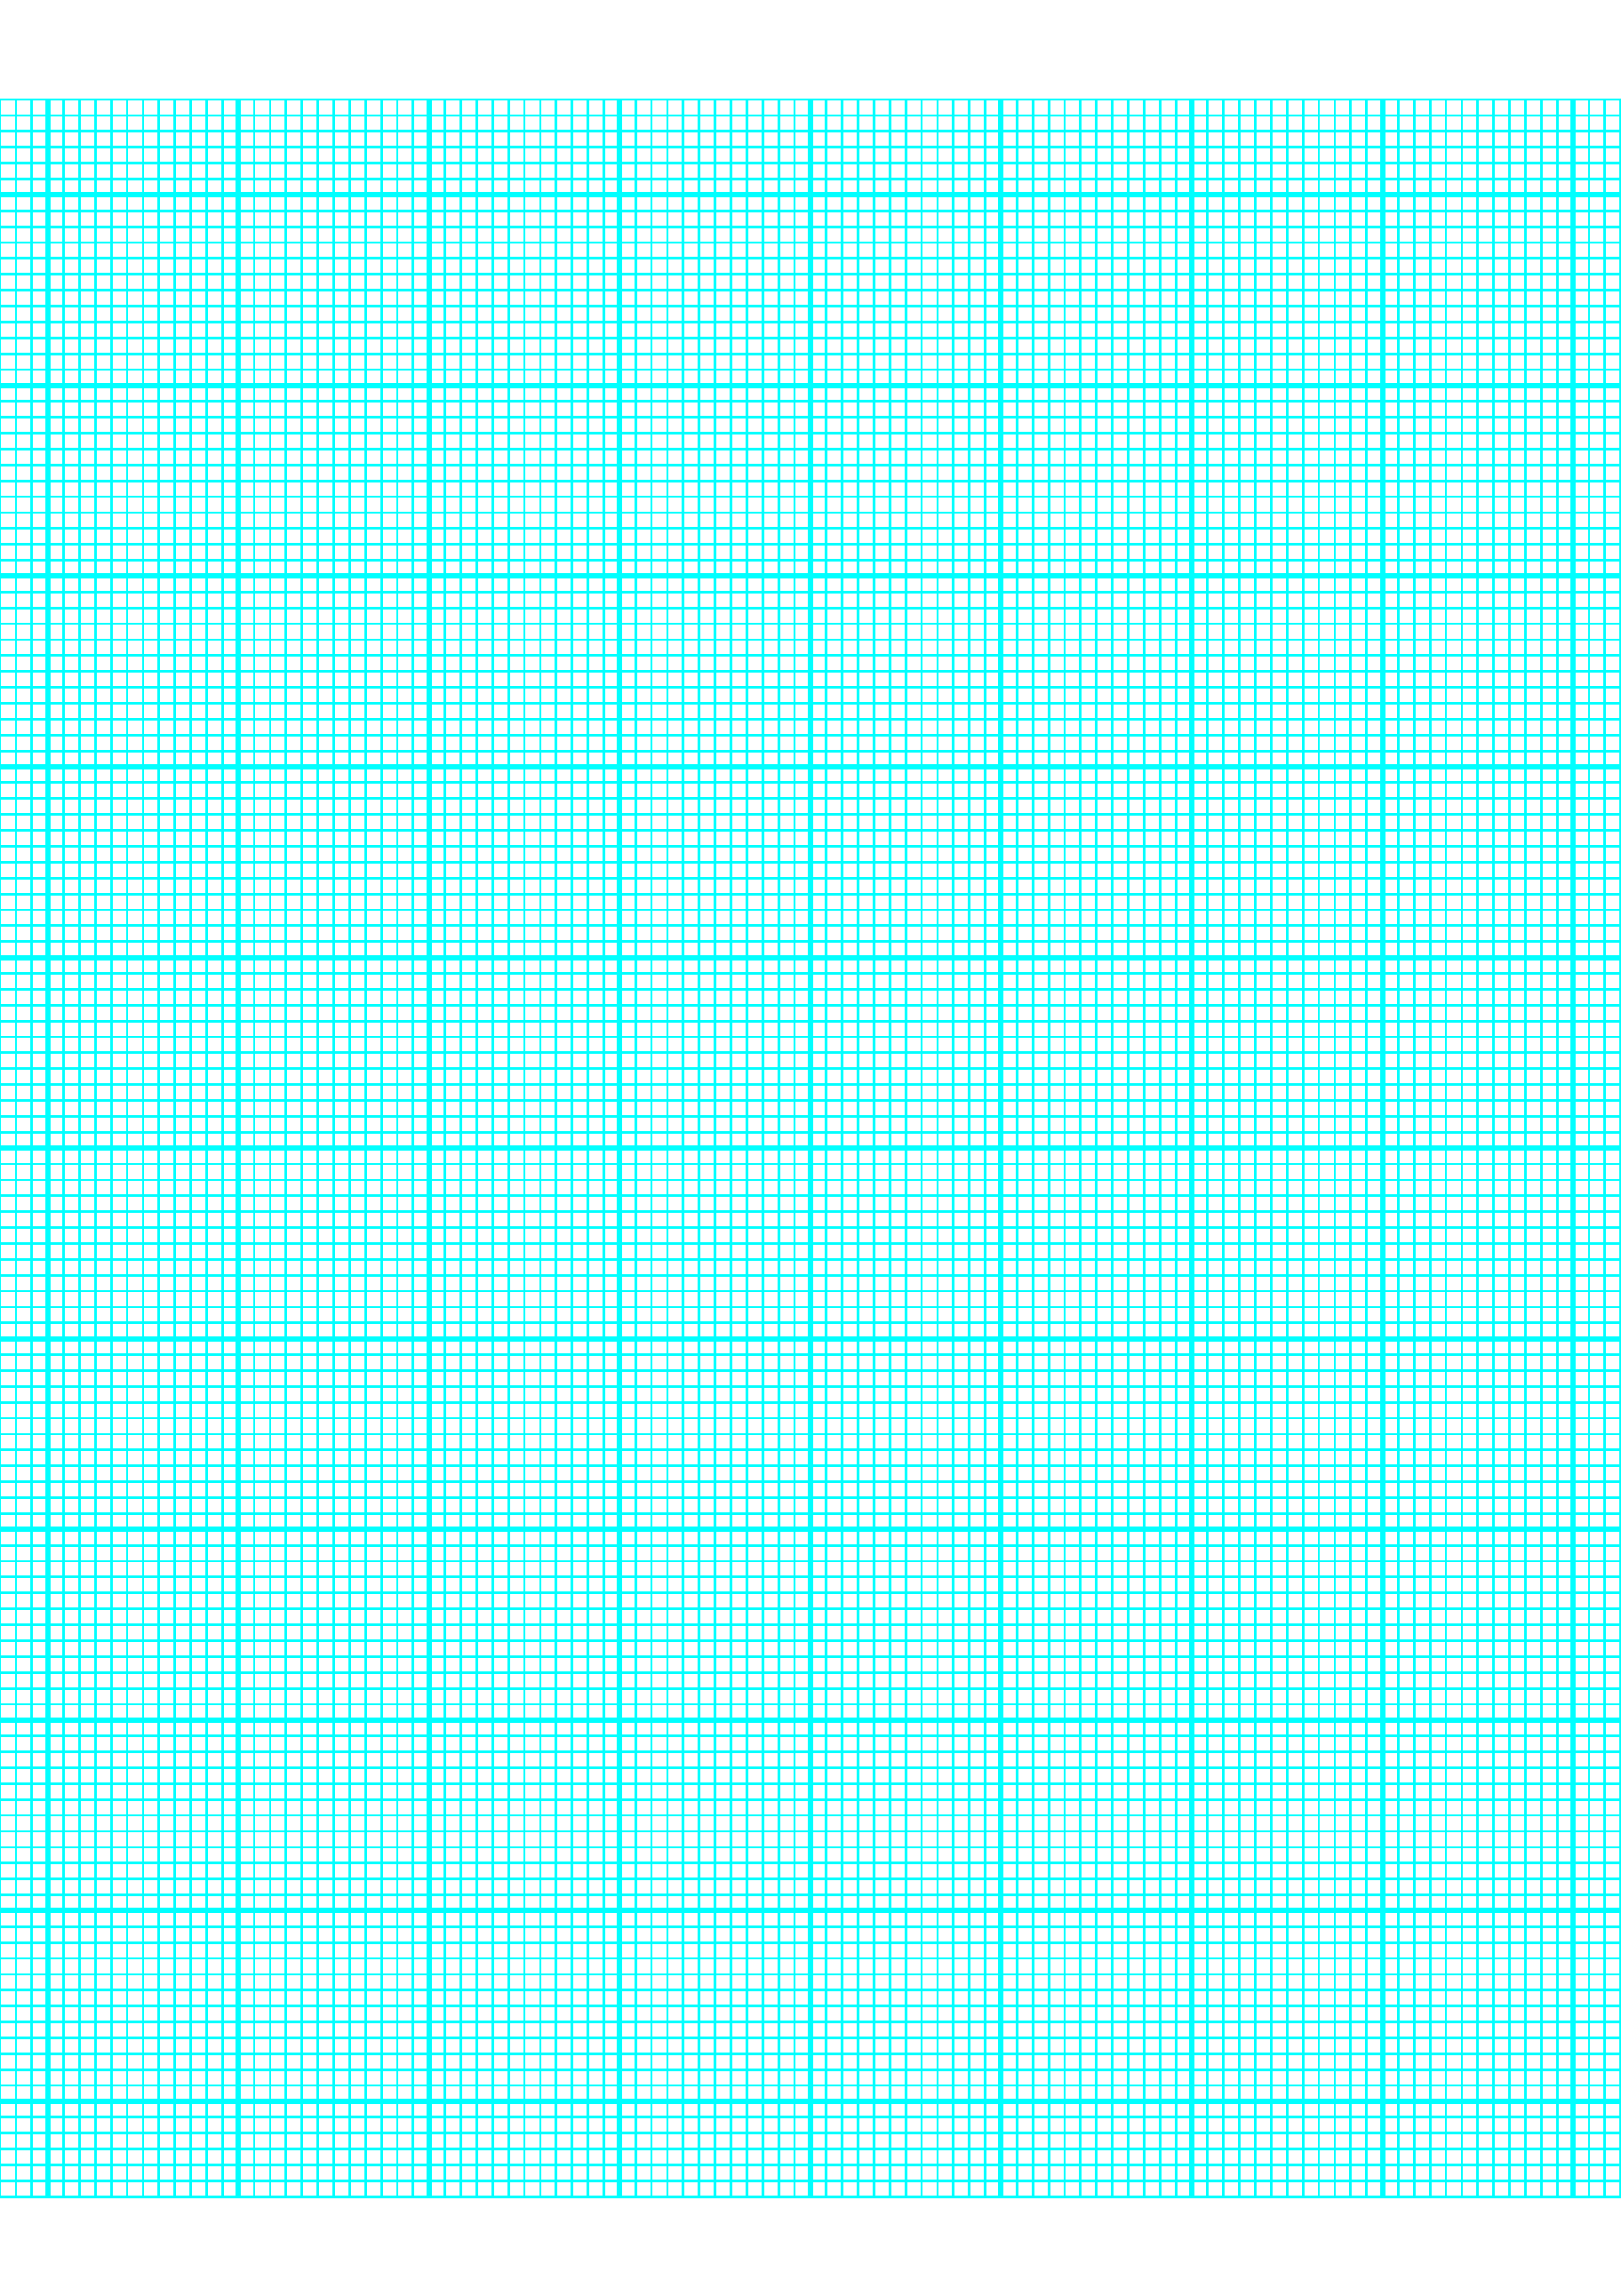 12 Lines per Inch Graph Paper on LetterSized Paper  Heavy